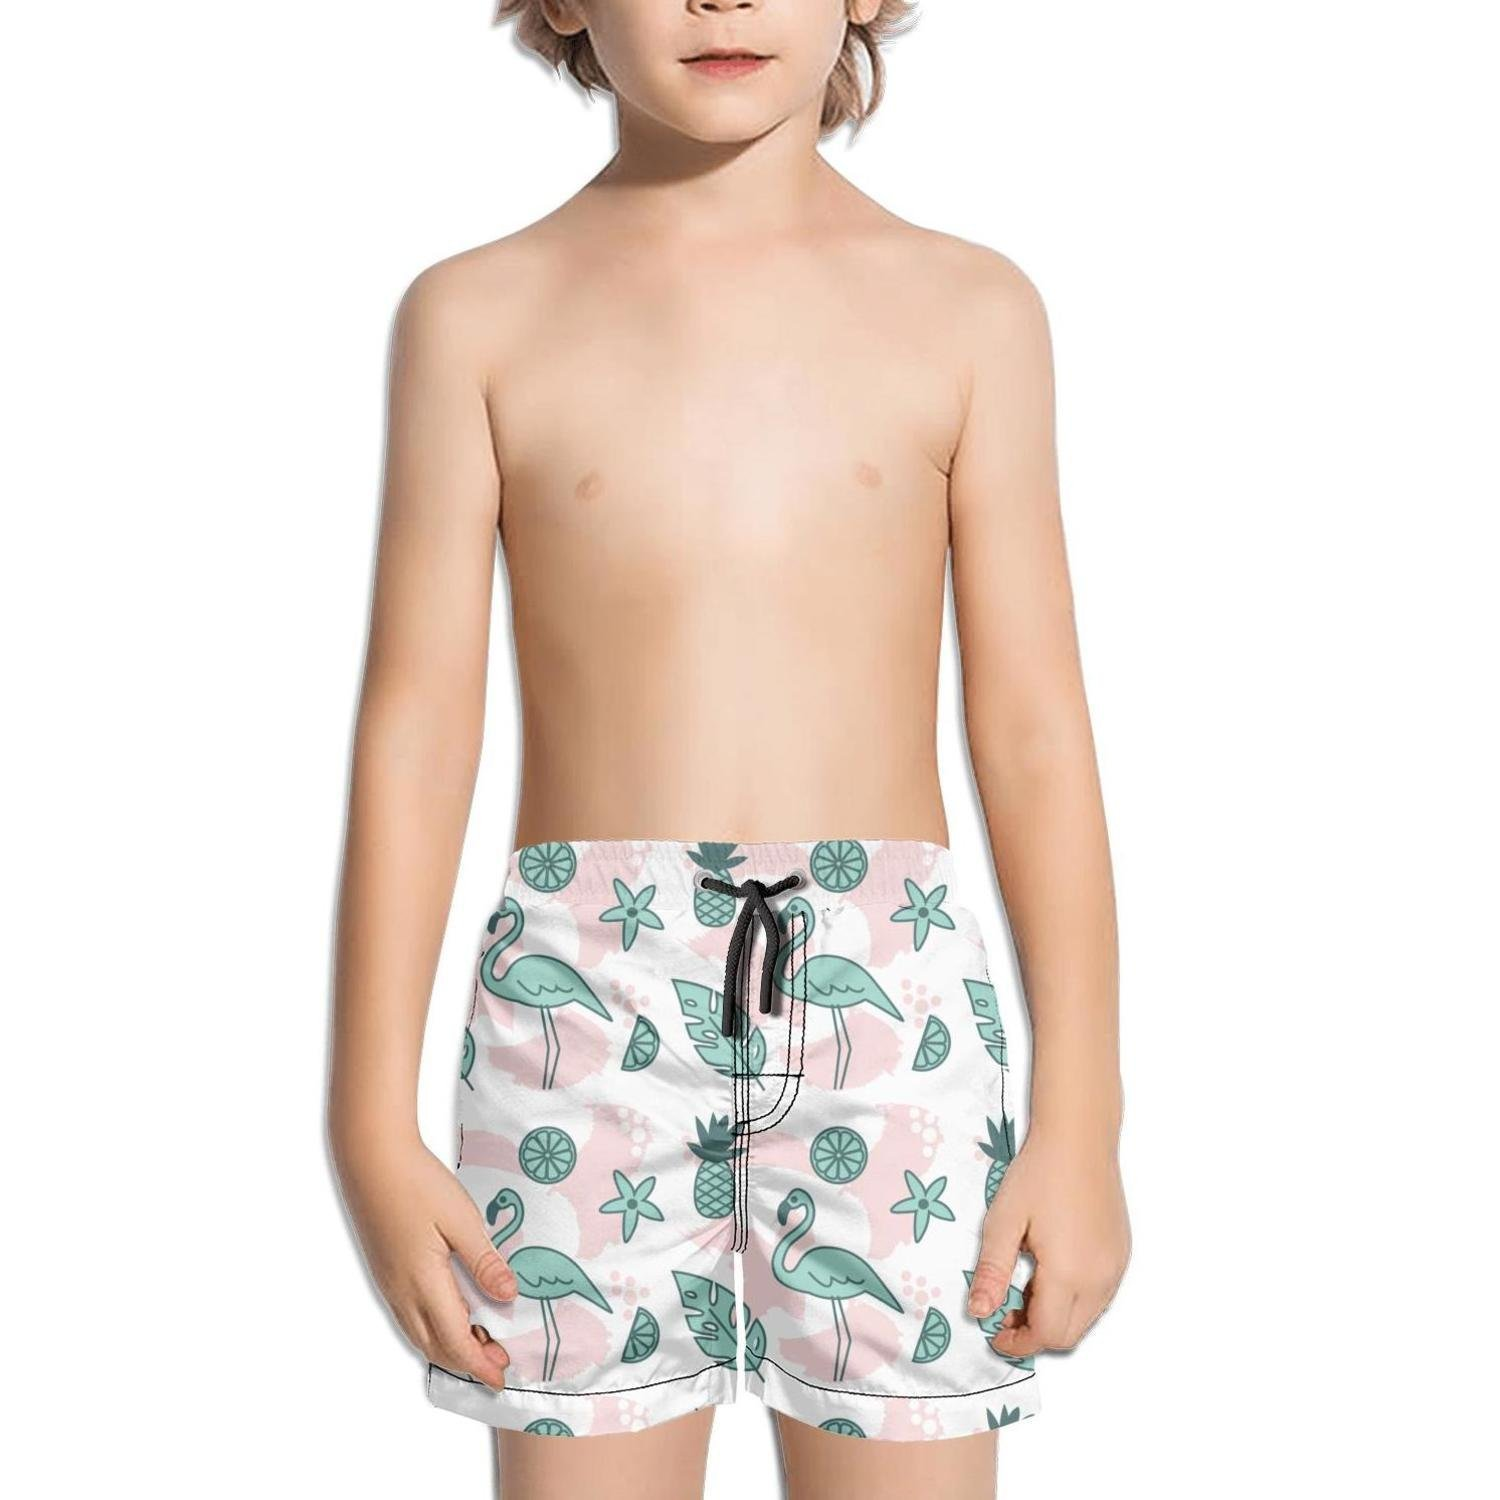 Lenard Hughes Boys Quick Dry Beach Shorts with Pockets Tropical Flamingo Pattern Swim Trunks for Summer